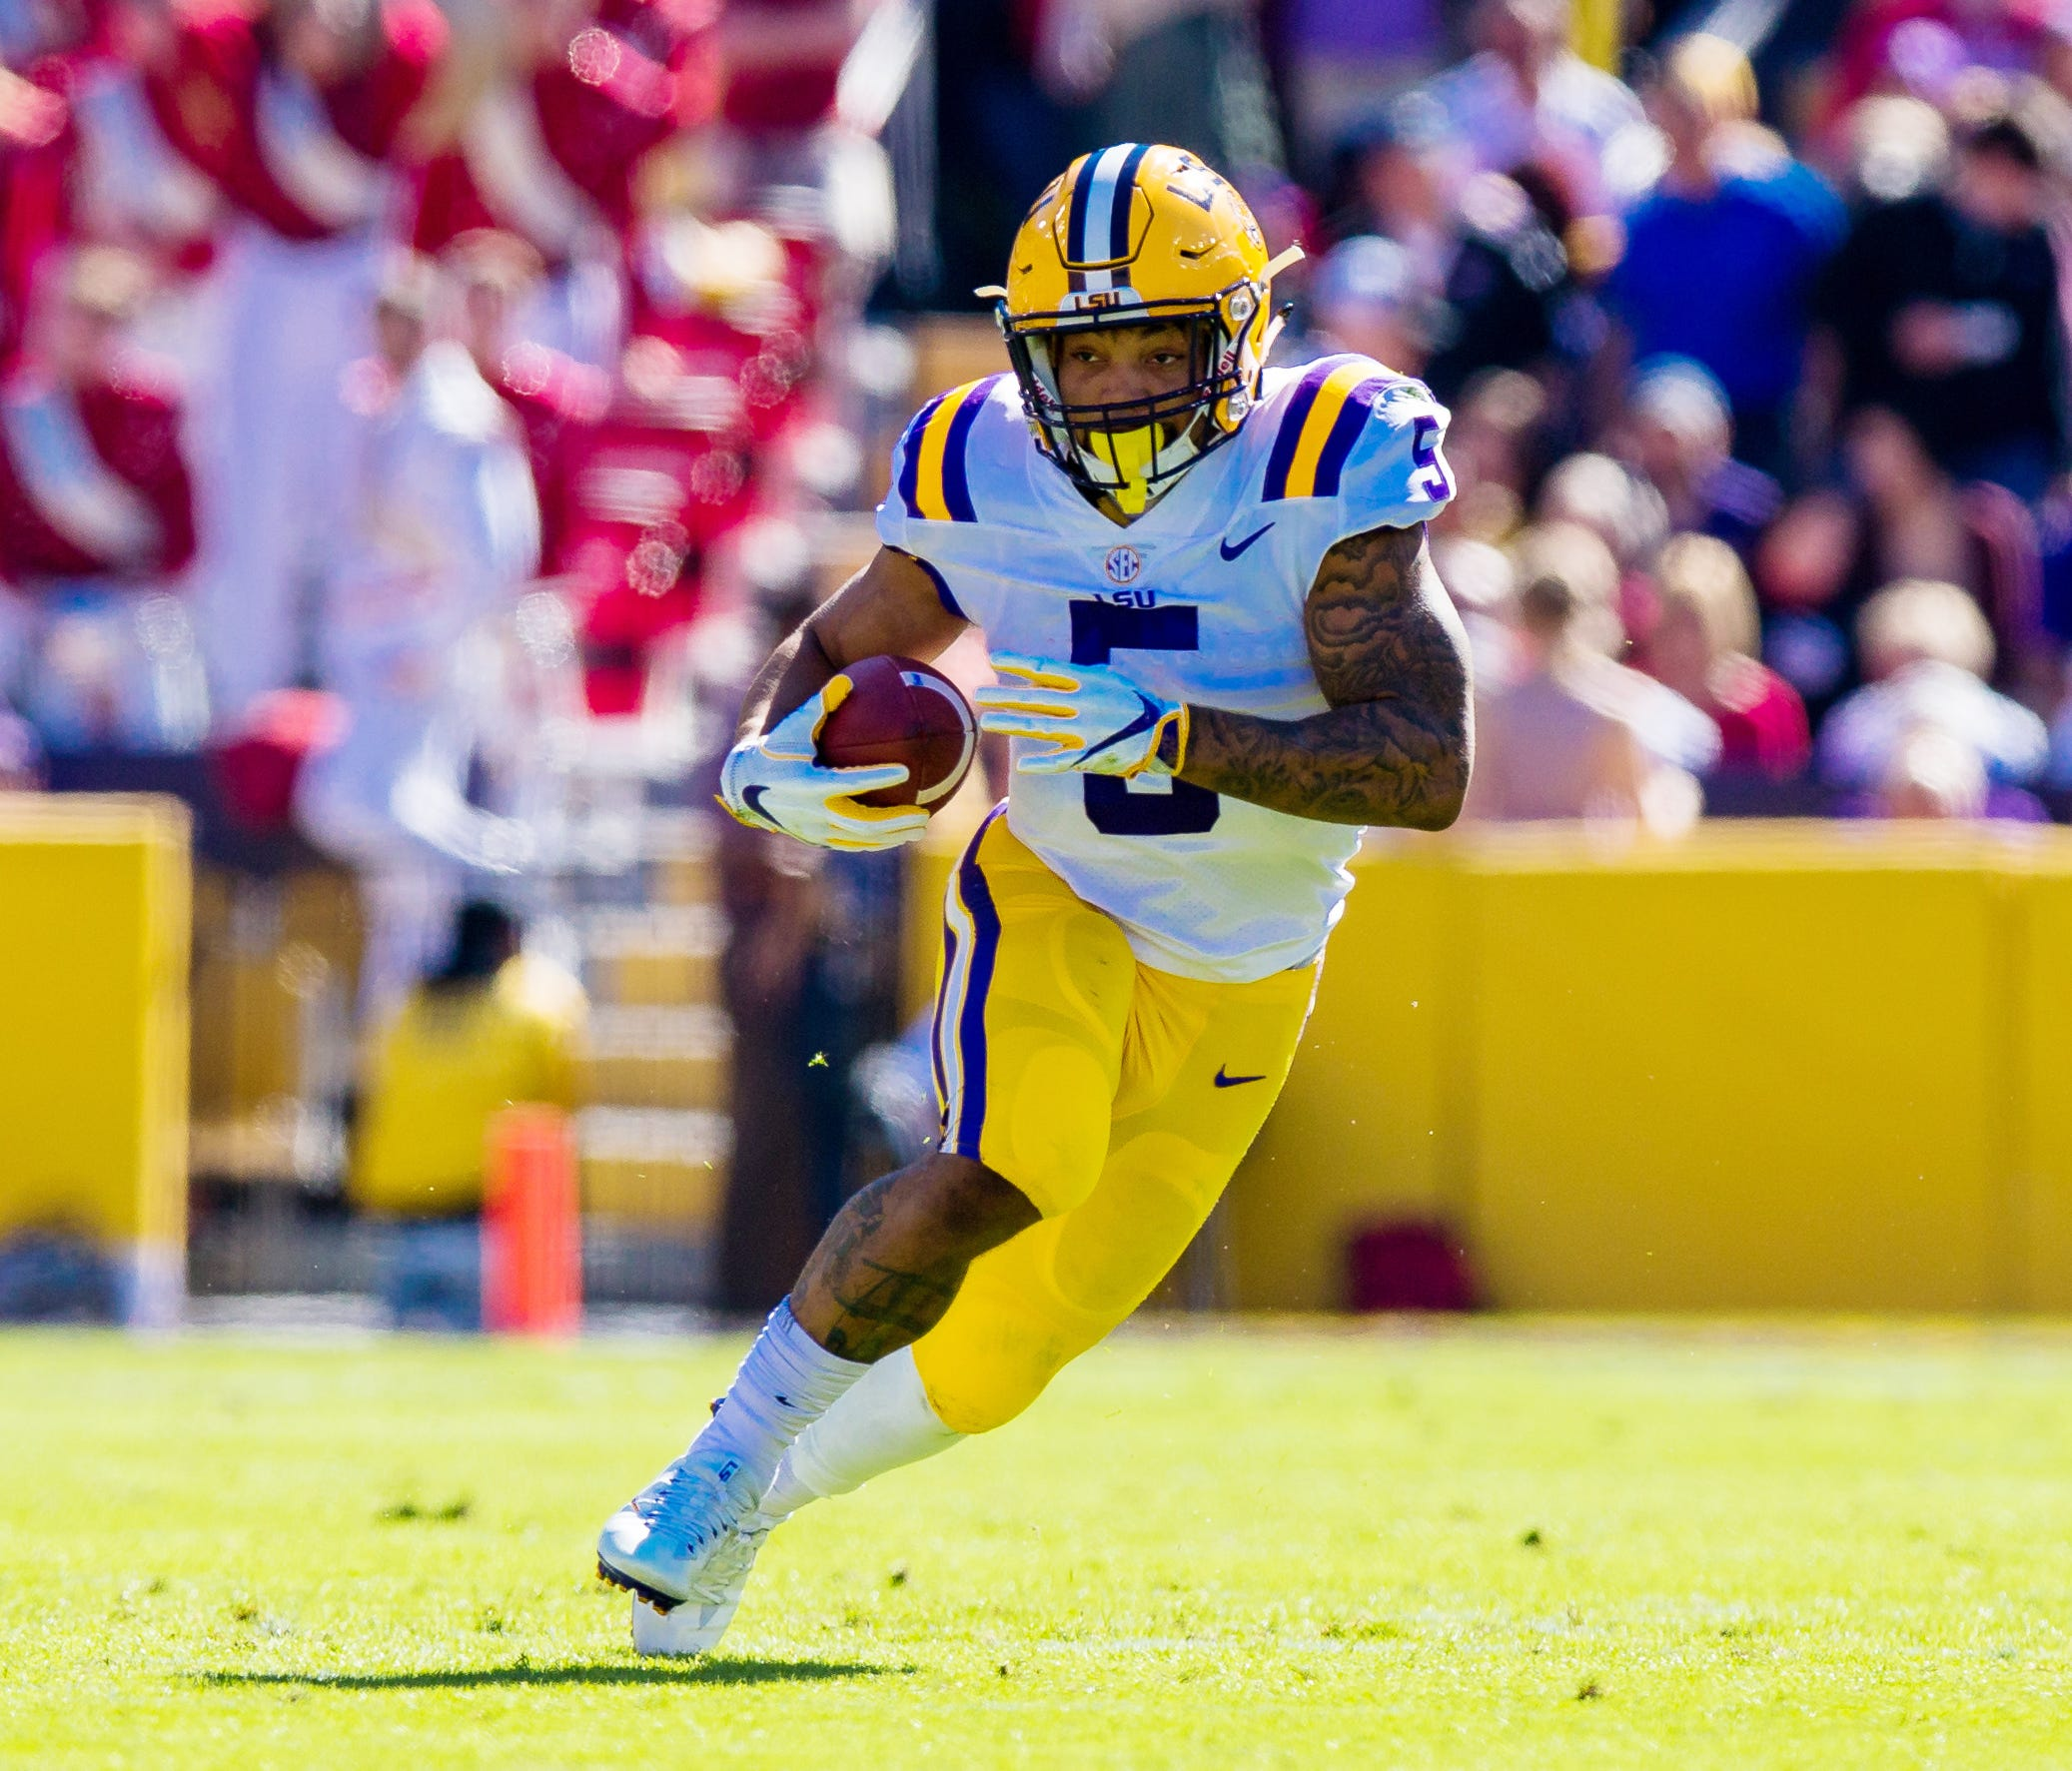 LSU Tigers running back Derrius Guice (5) runs against the Arkansas Razorbacks during the first half at Tiger Stadium.